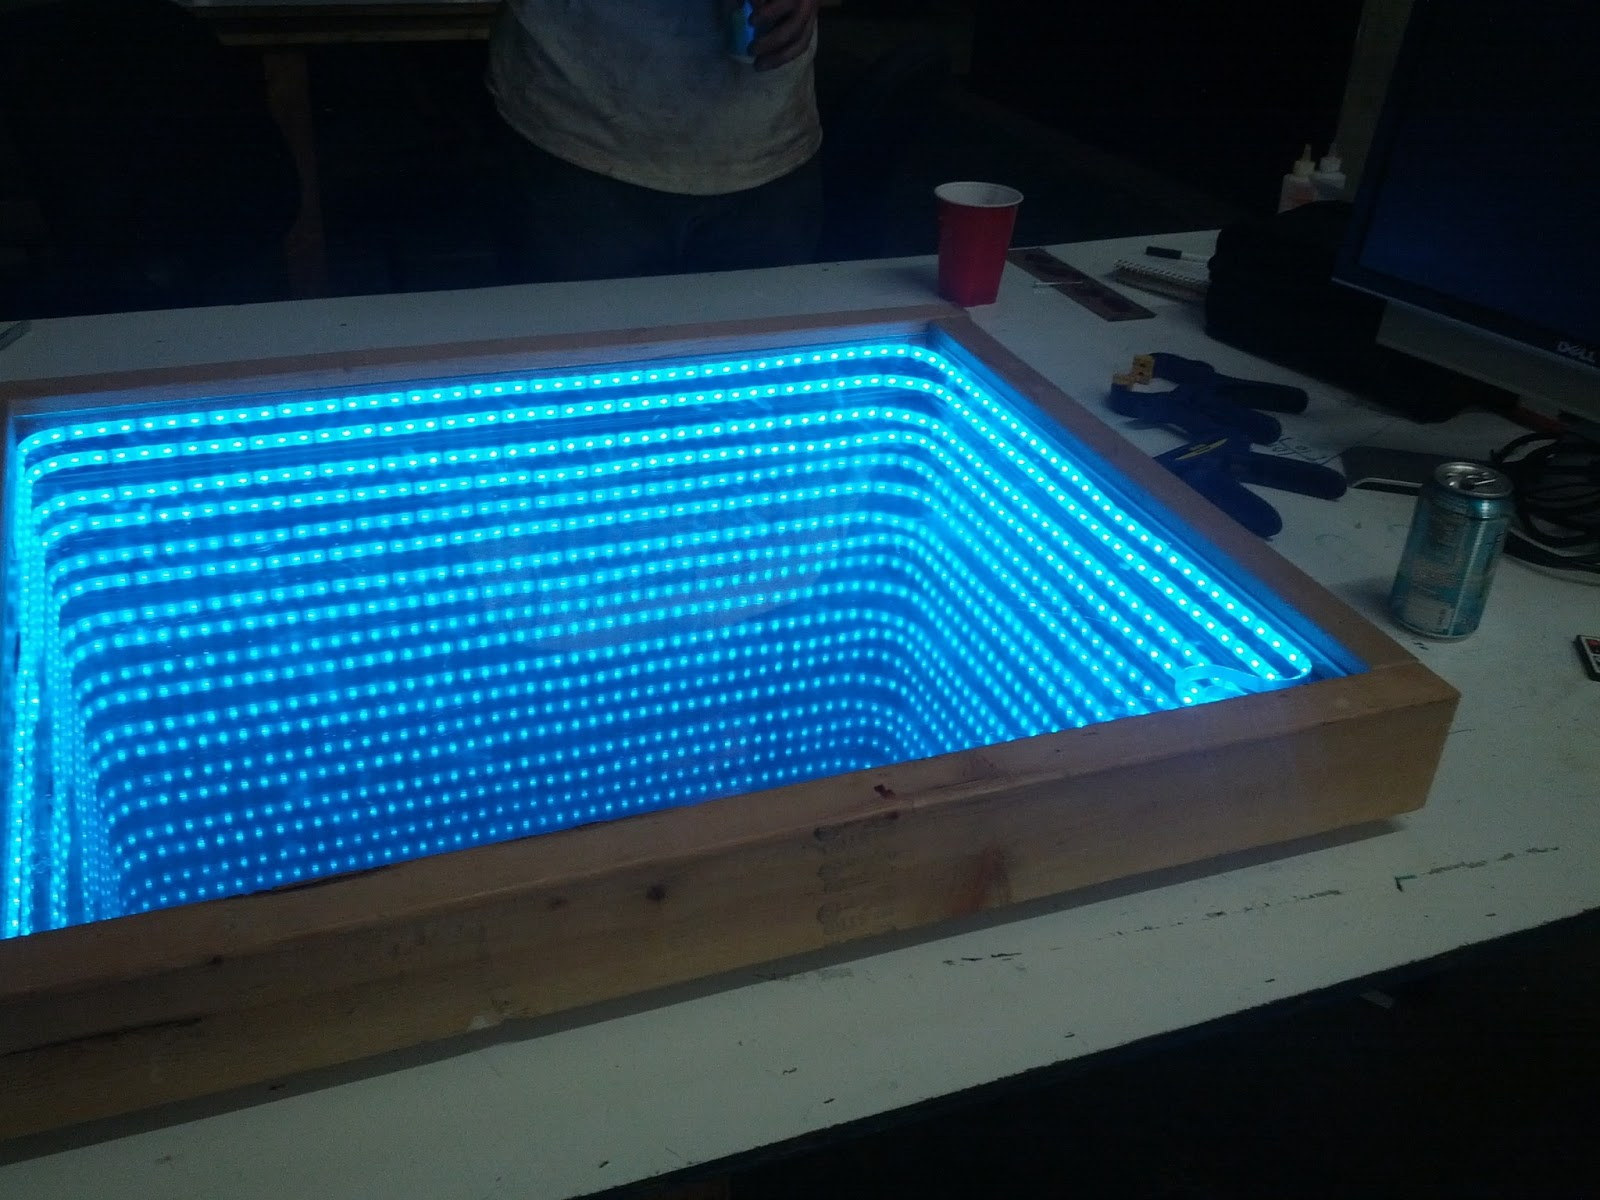 Freeside Atlanta: Infinity Mirror Prototype build